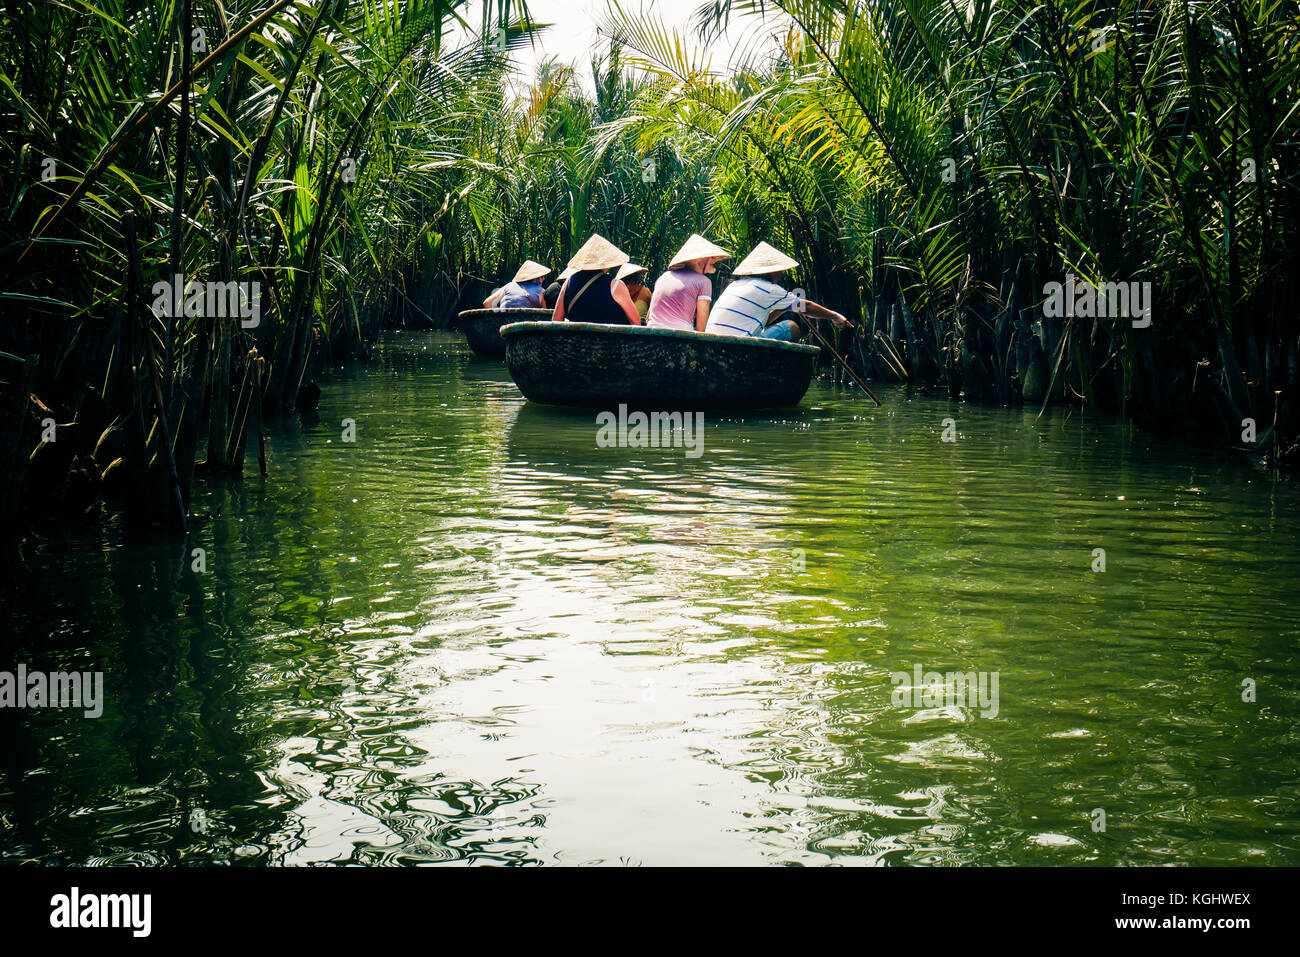 Tourists in traditional coracle boats on river Thu Bon near  Hoi An, Vietnam, south East Asia. - Stock Image